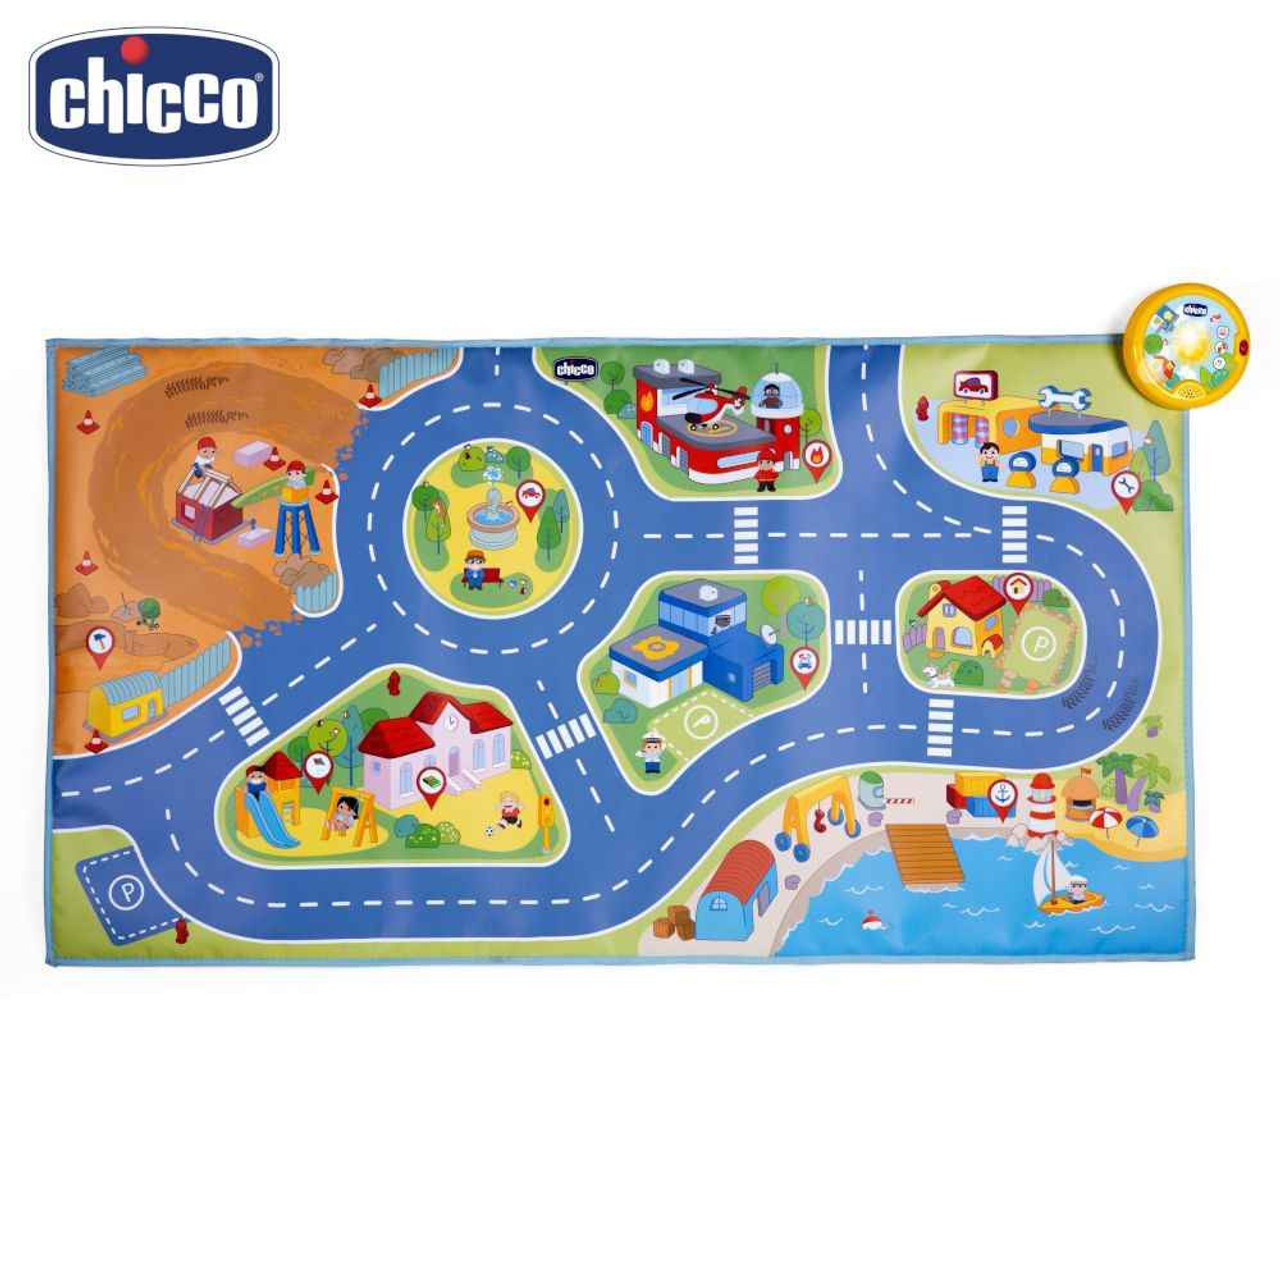 Chicco Electronic City Playmat 110 x 60 cm at Baby Barn Discounts Chicco new large electronic playmat with printed road suitable for toddlers to roam their tiny vehicles along.